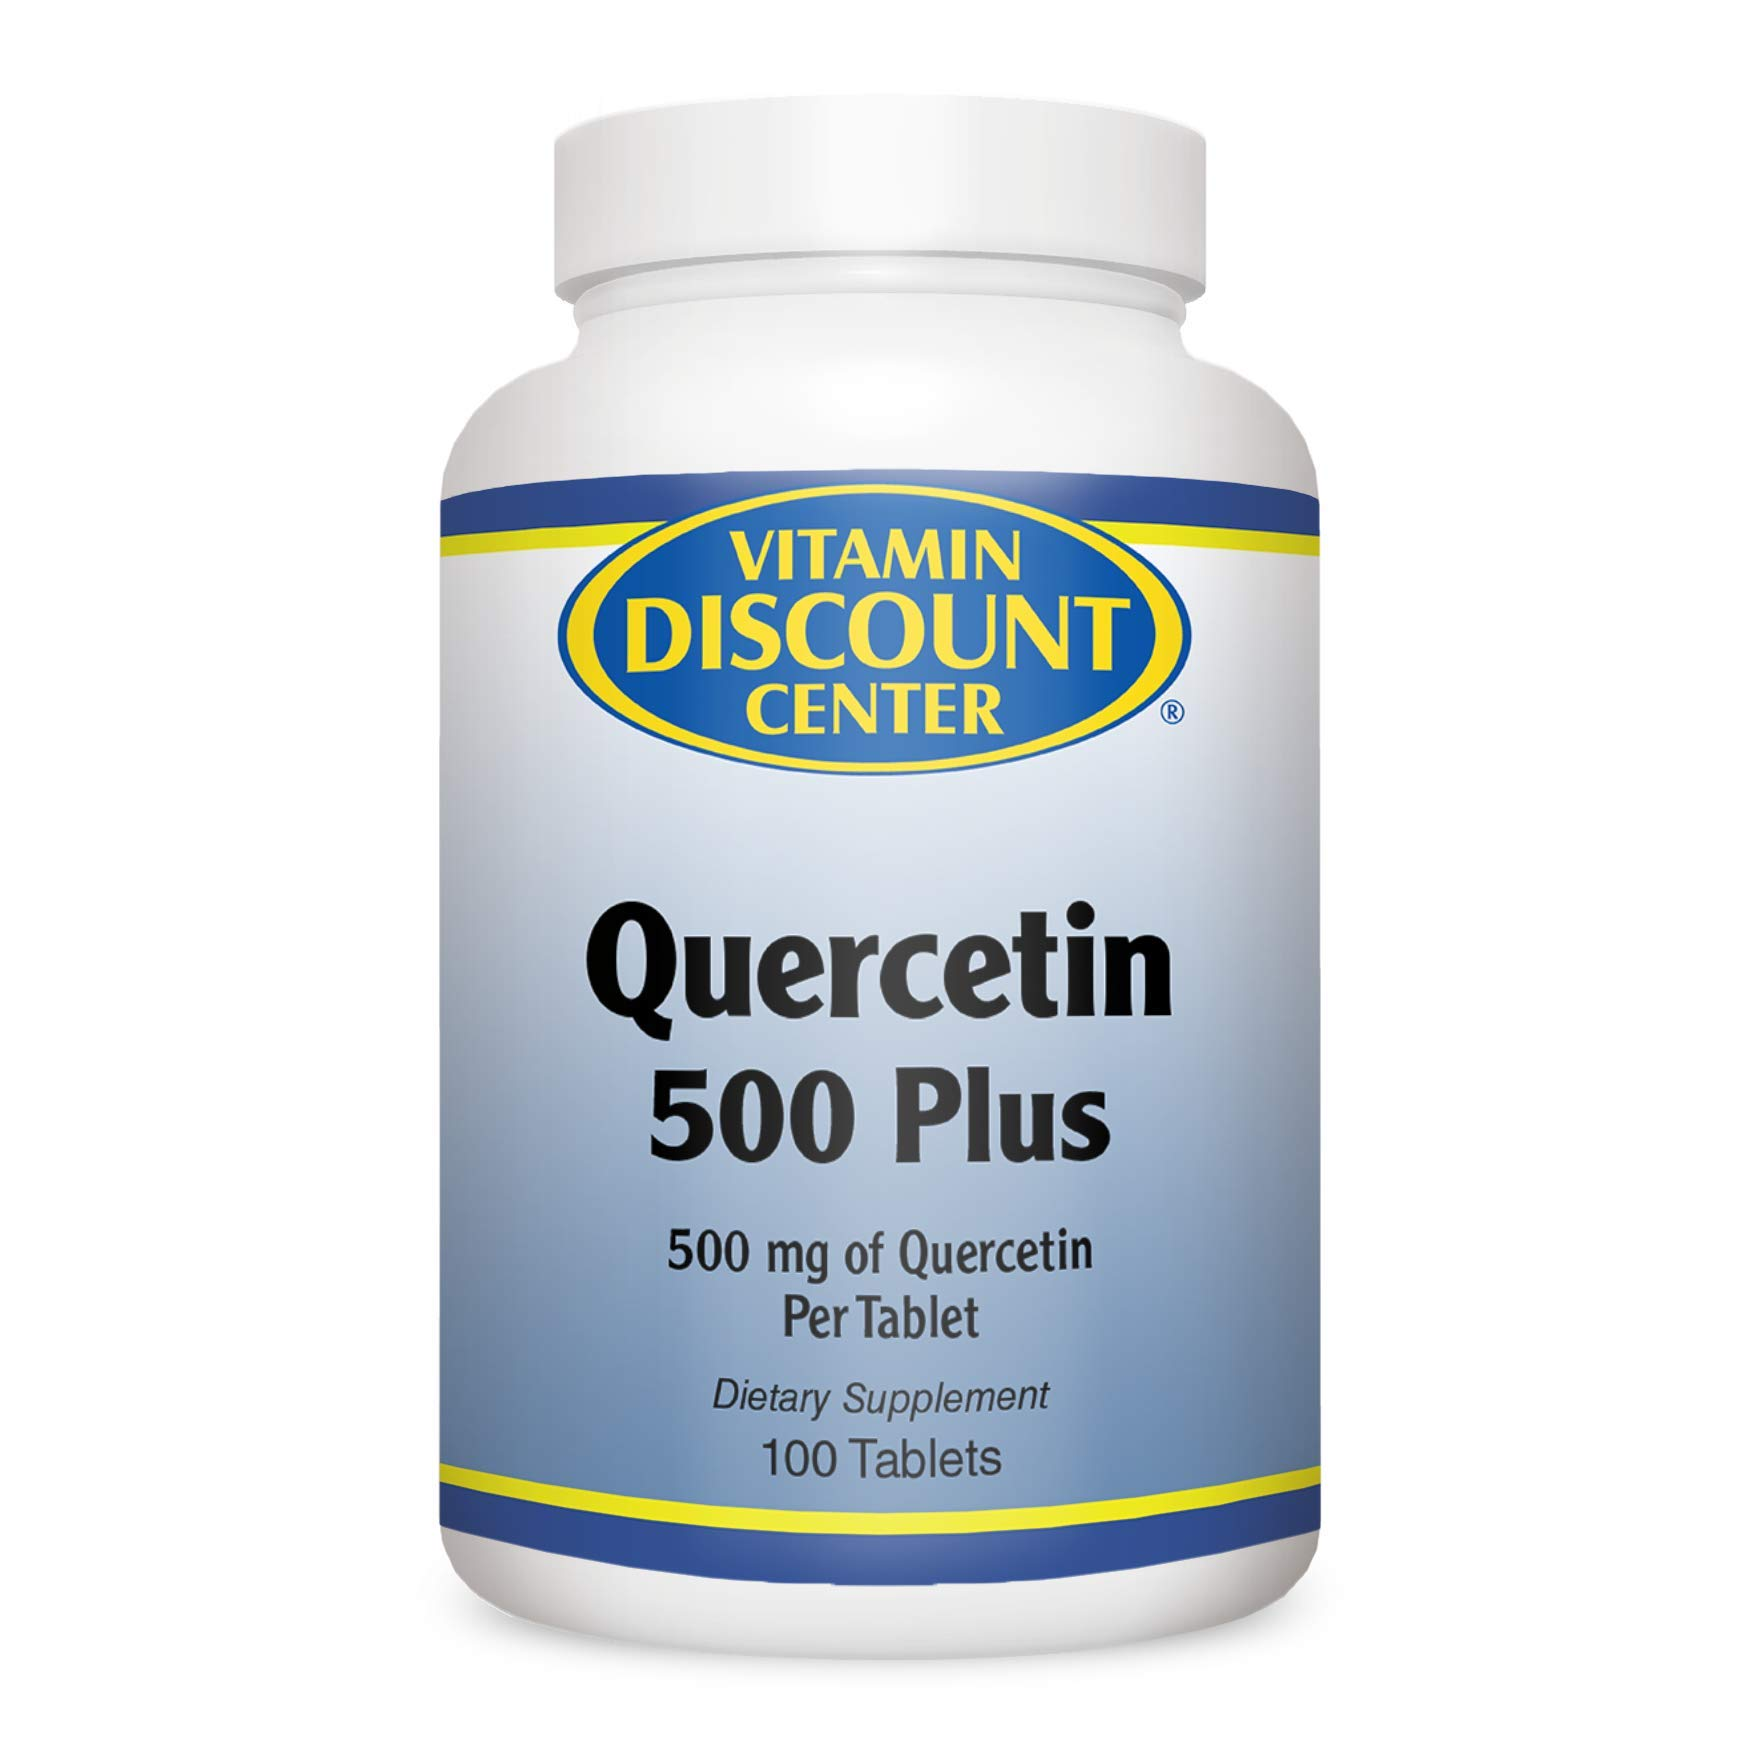 Vitamin Discount Center Quercetin 500 Plus, with Vitamin C, Bromelain and Turmeric, 100 Tablets by Vitamin Discount Center